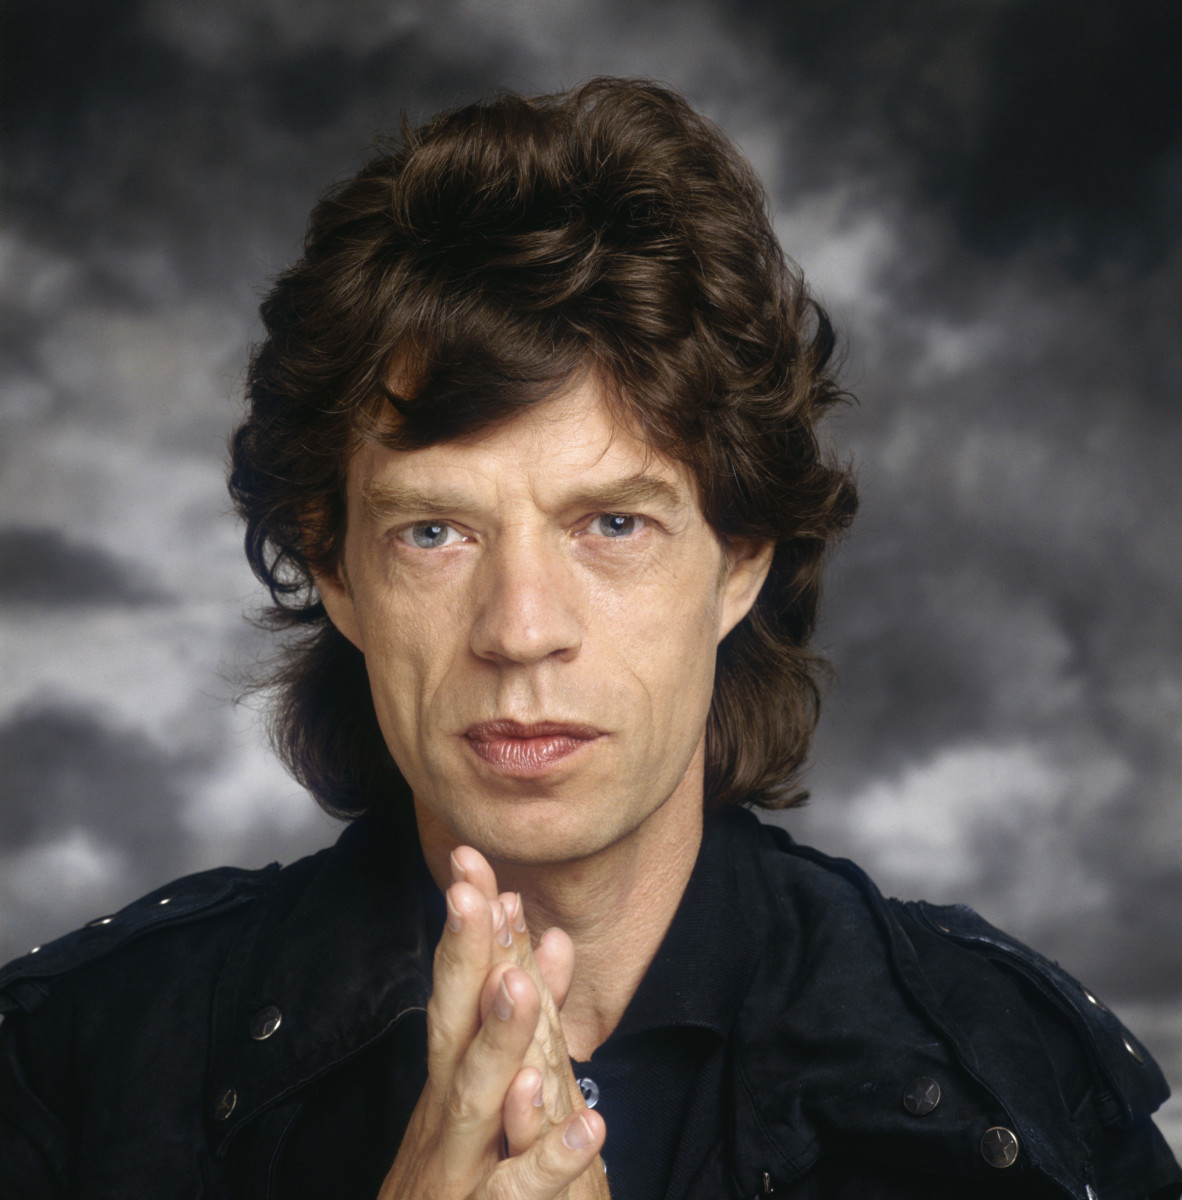 Mick Jagger Photo